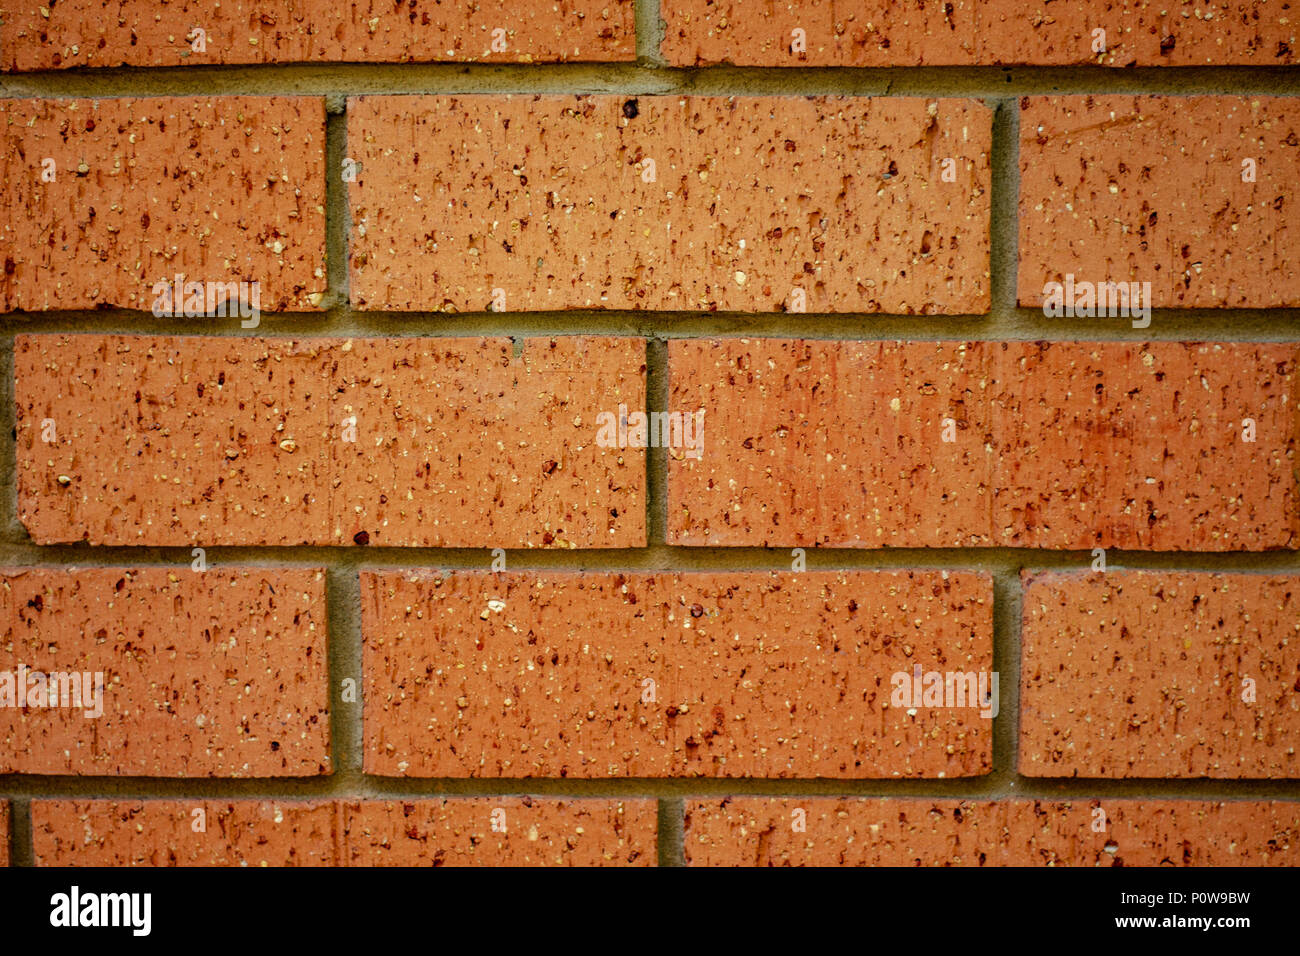 Red orange brick wall with texture - Stock Image